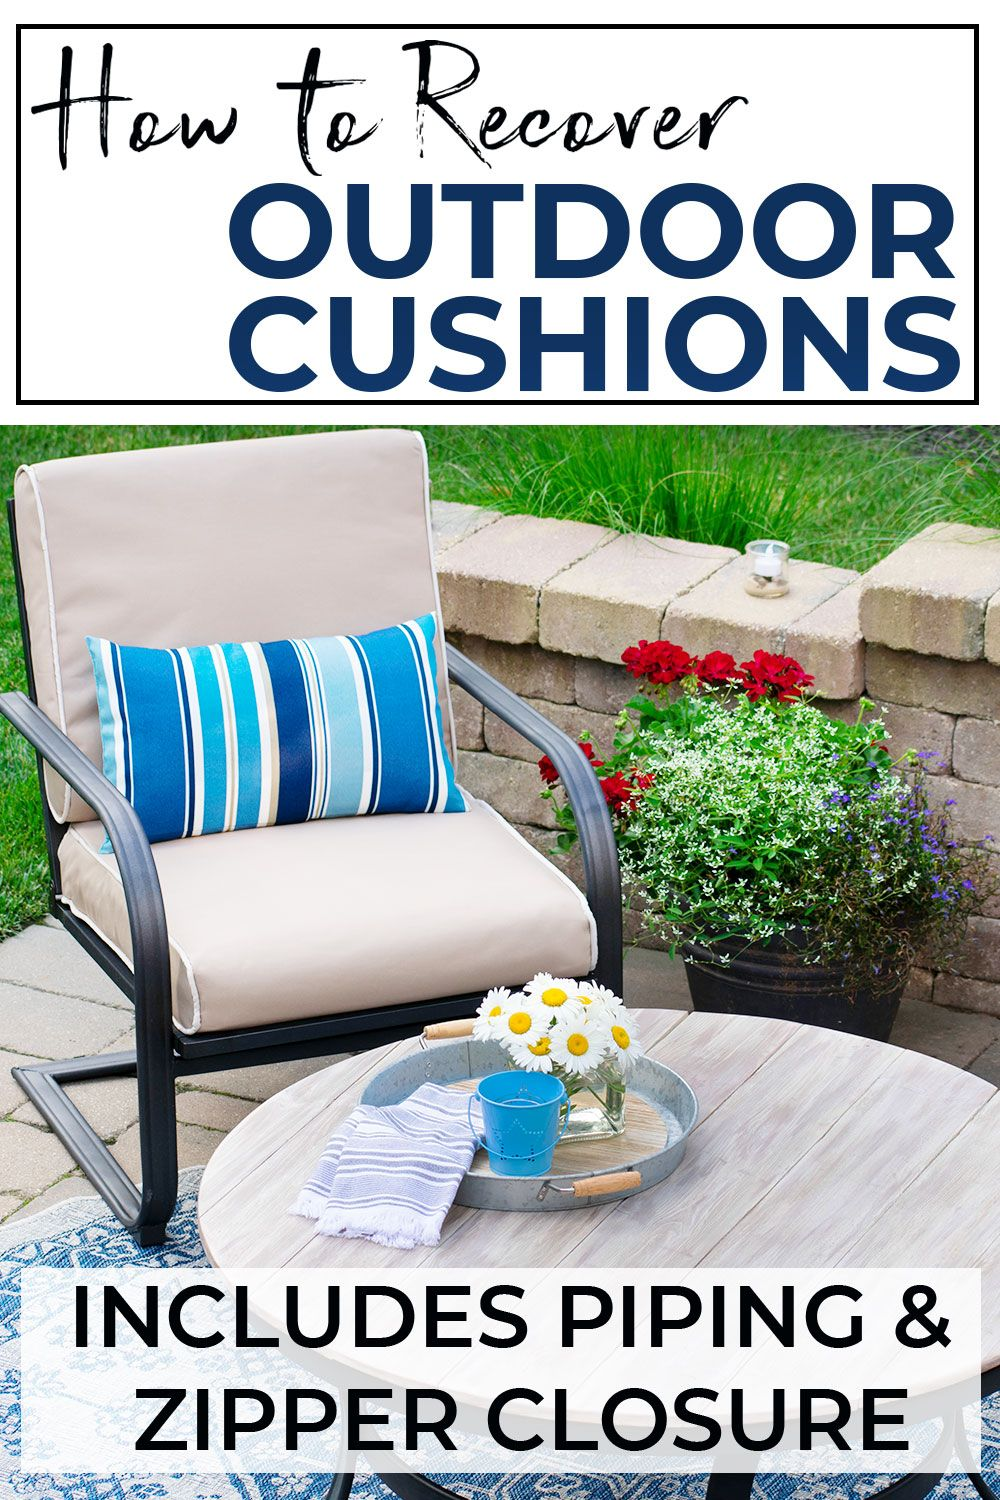 How To Recover Your Outdoor Cushions For Your Deck or